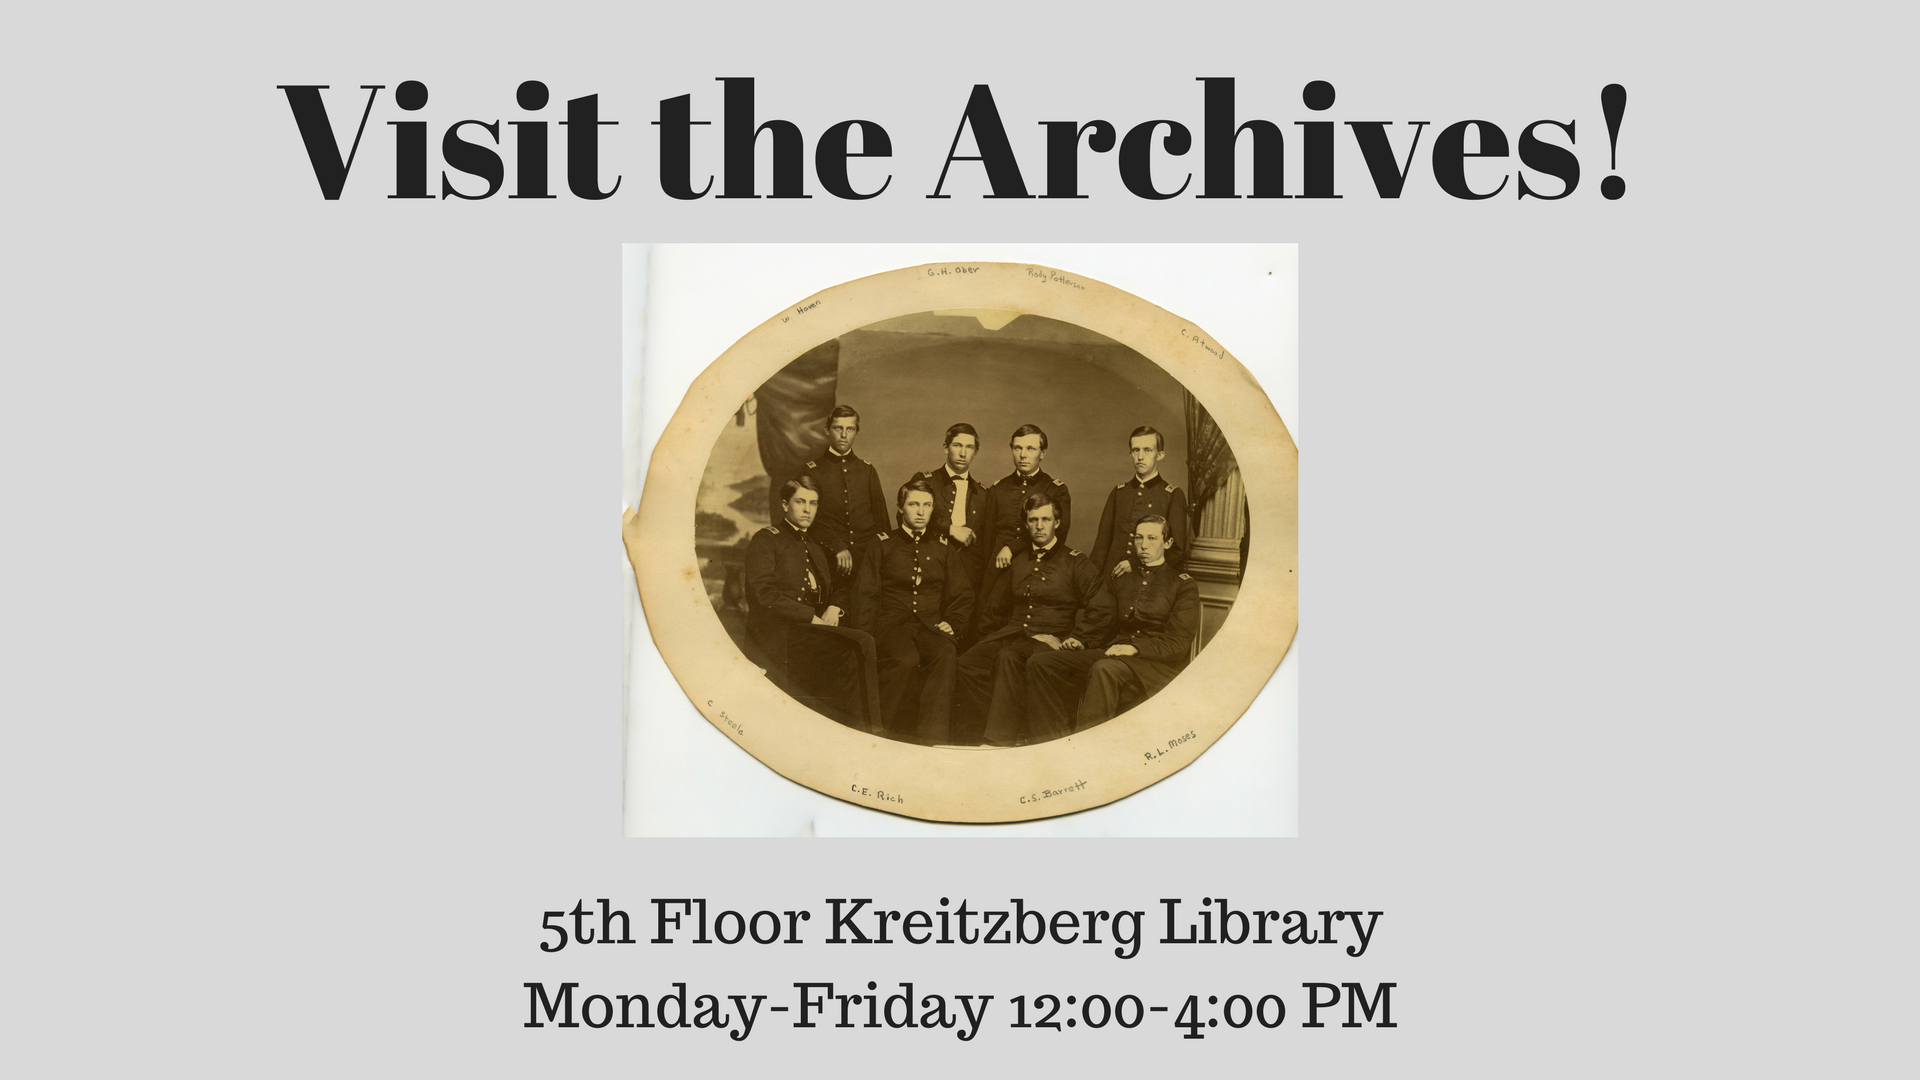 Visit the Archives 5th floor Kreitzberg Library Monday-Friday noon to 4pm